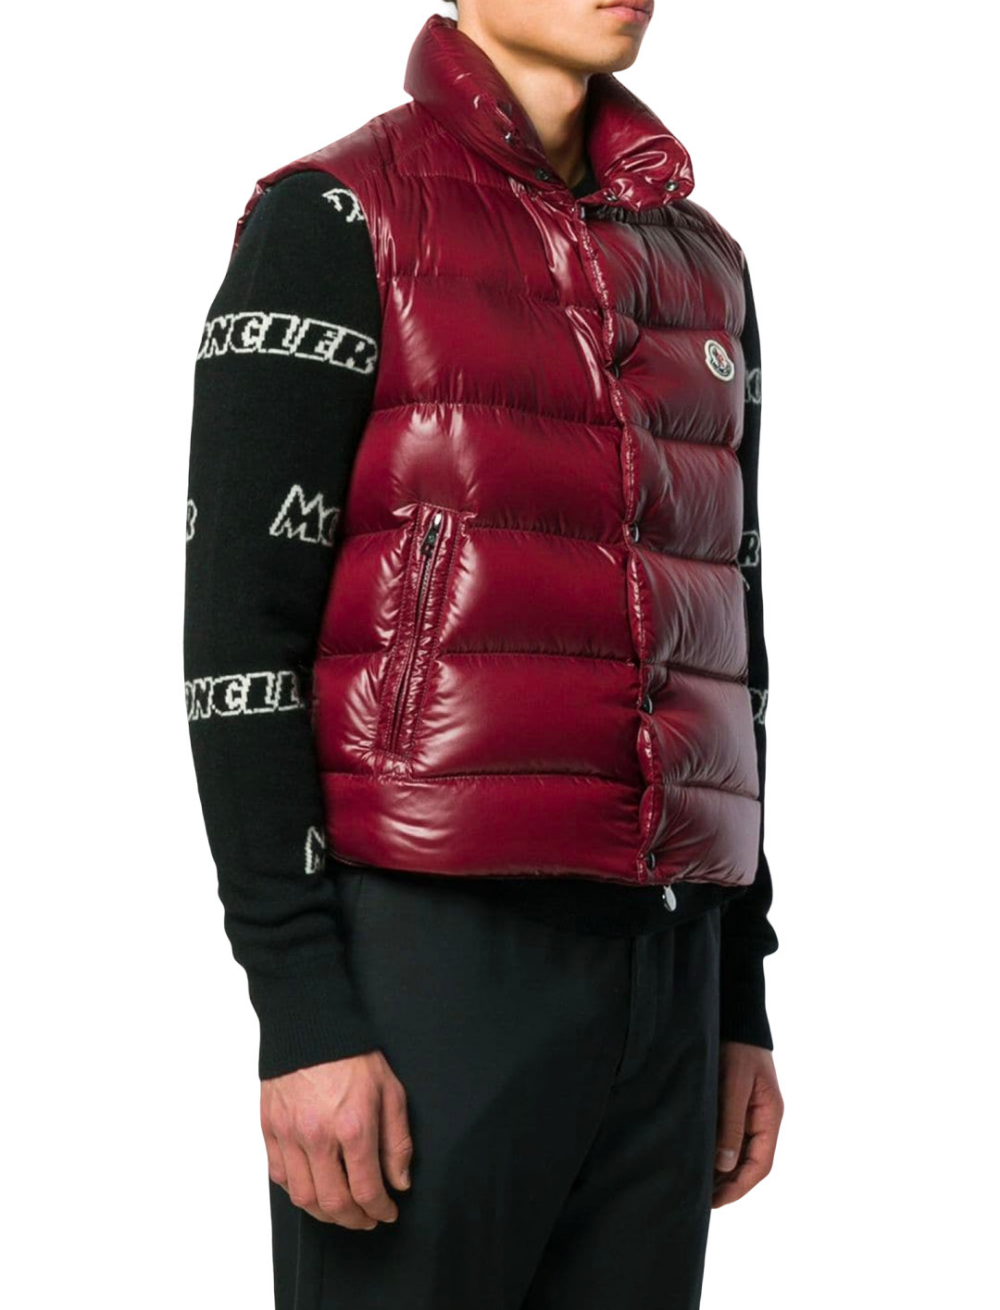 A Boogie Wit Da Hoodie Padded Gilet, Red, Moncler | Post